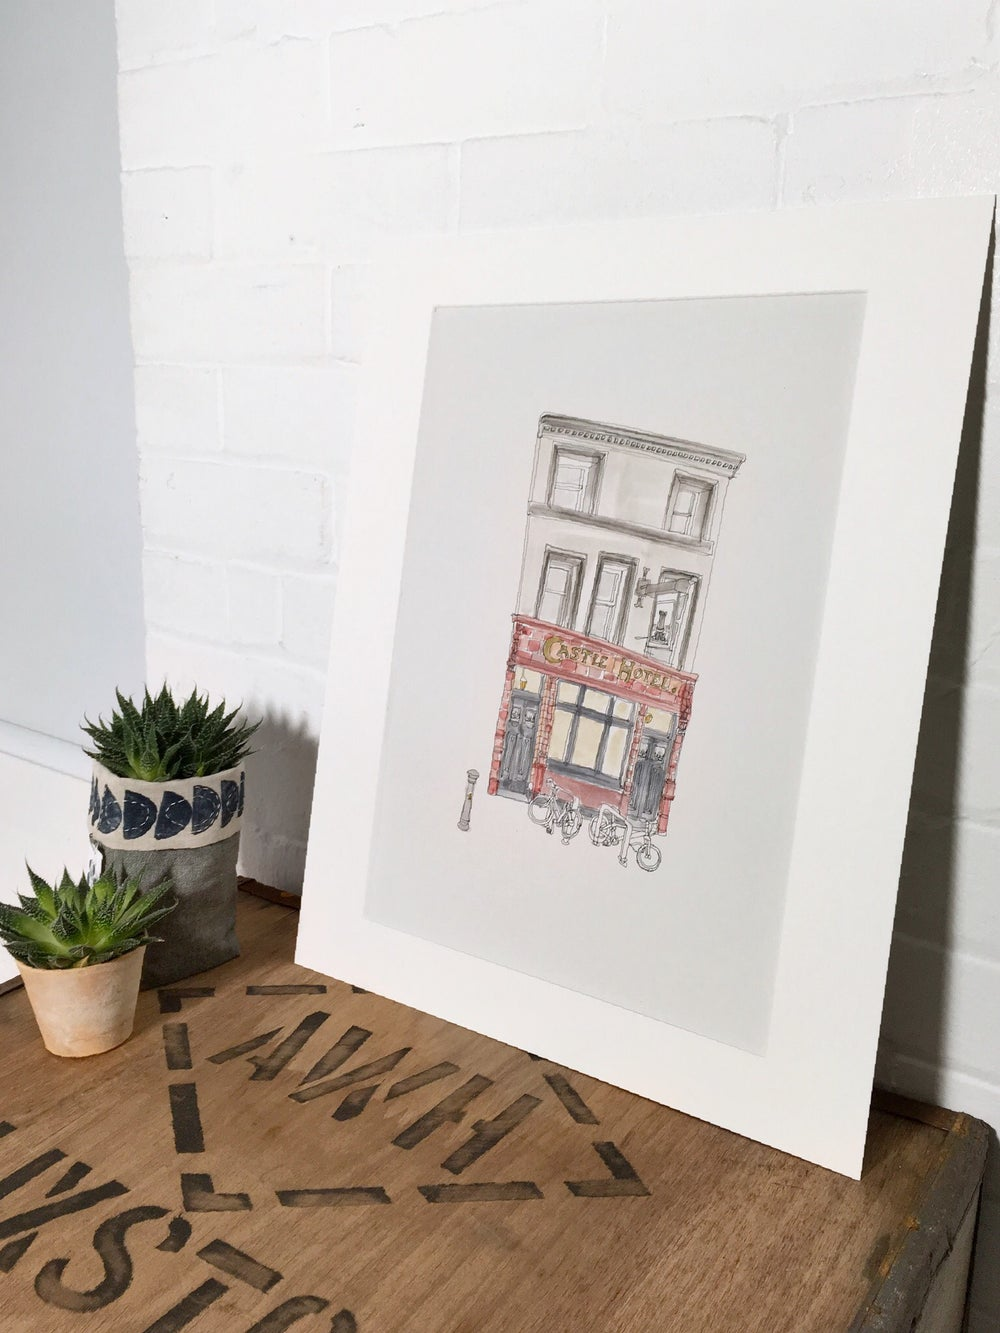 Image of The Castle Hotel, Manchester. A3 Individually hand painted, limited edition print.